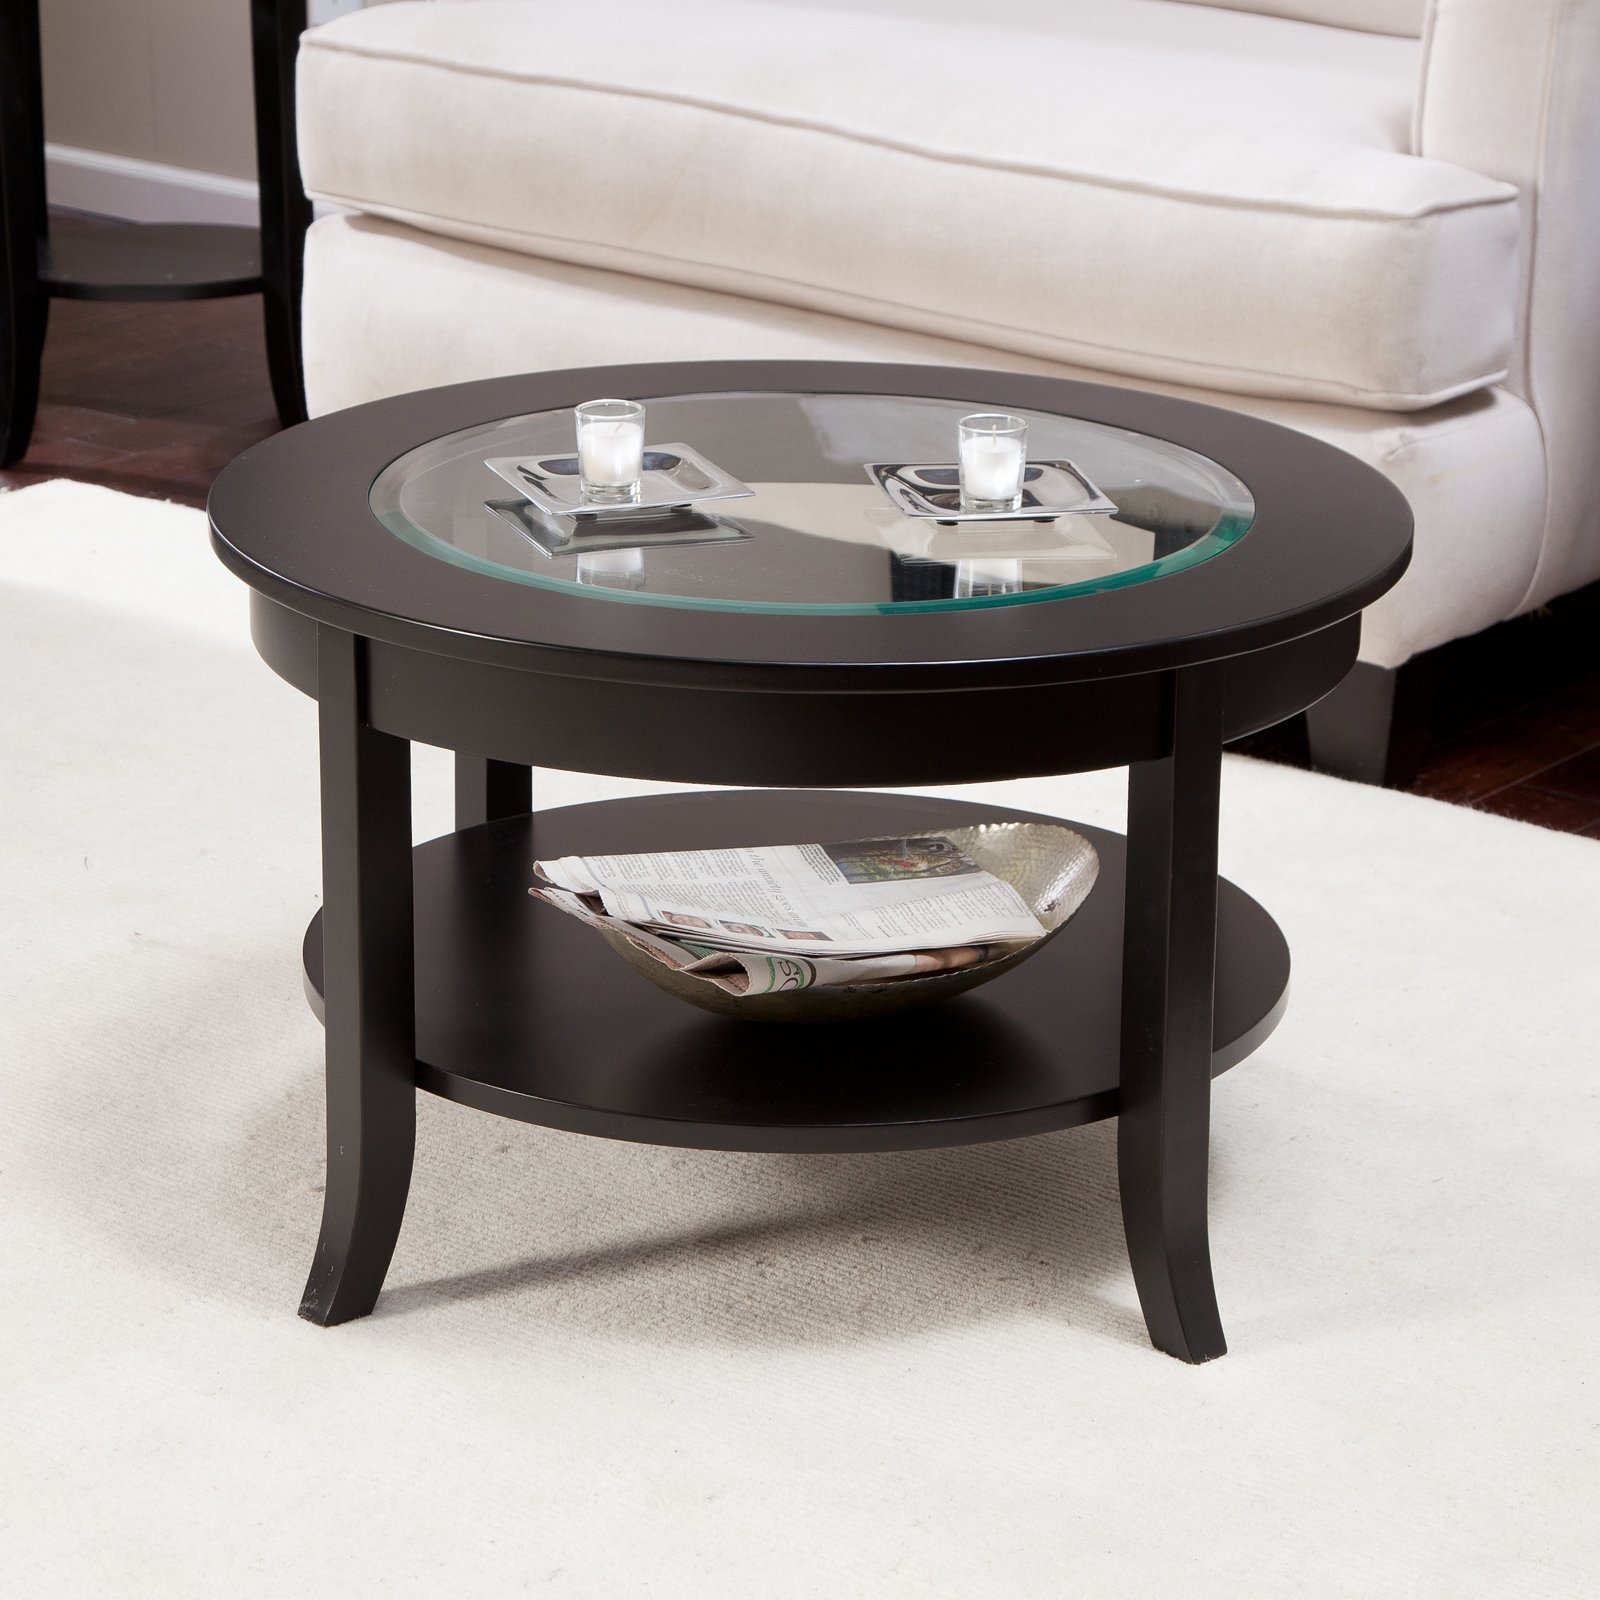 Small Round Coffee Tables Combine With Glass Small Round Coffee Tables Small Round Glass Coffee Table (View 8 of 10)